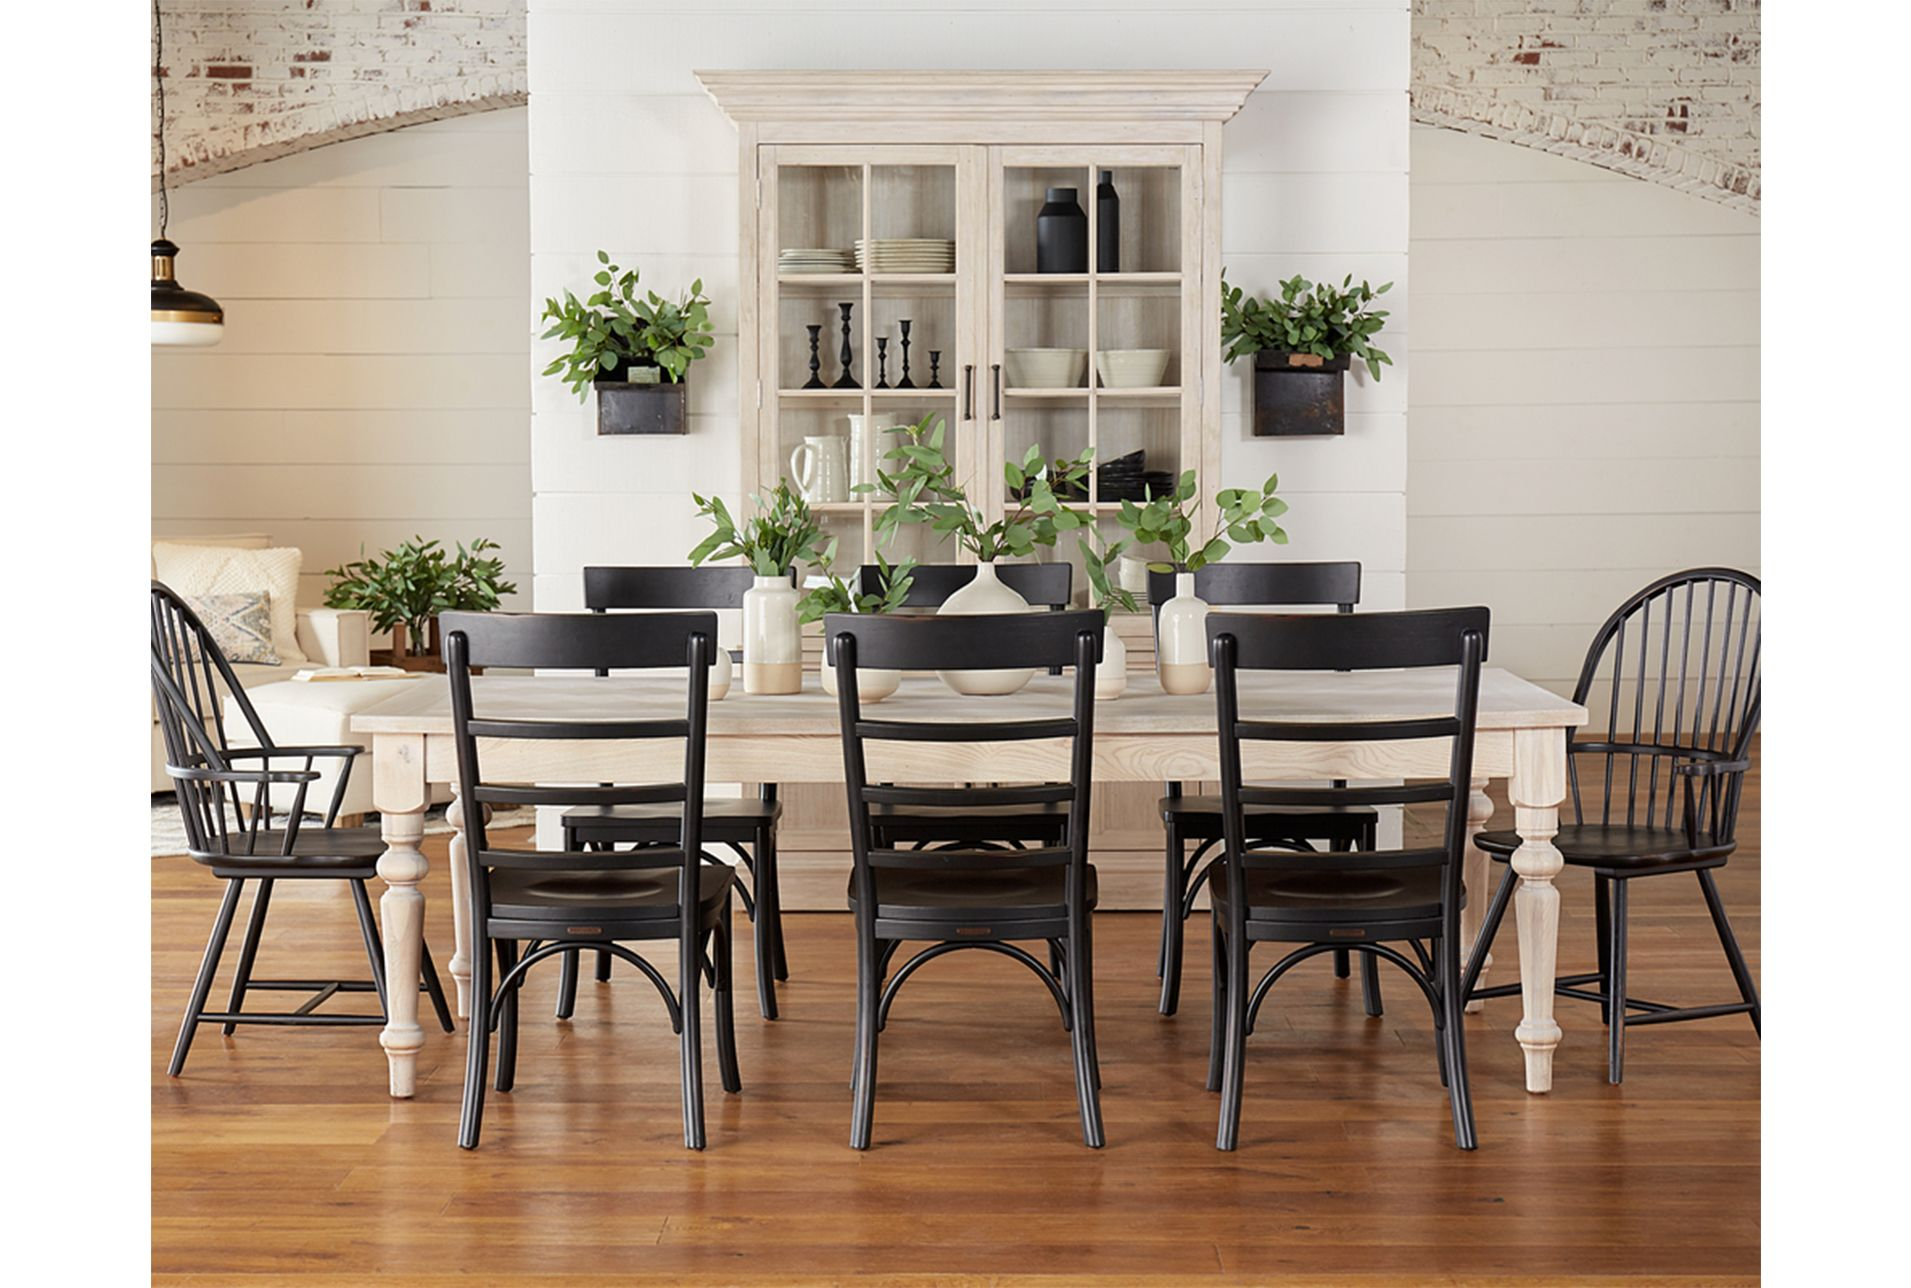 Magnolia Home Prairie Dining Table By Joanna Gaines Joanna Gaines Dining Room Dining Room Small Interior Design Dining Room